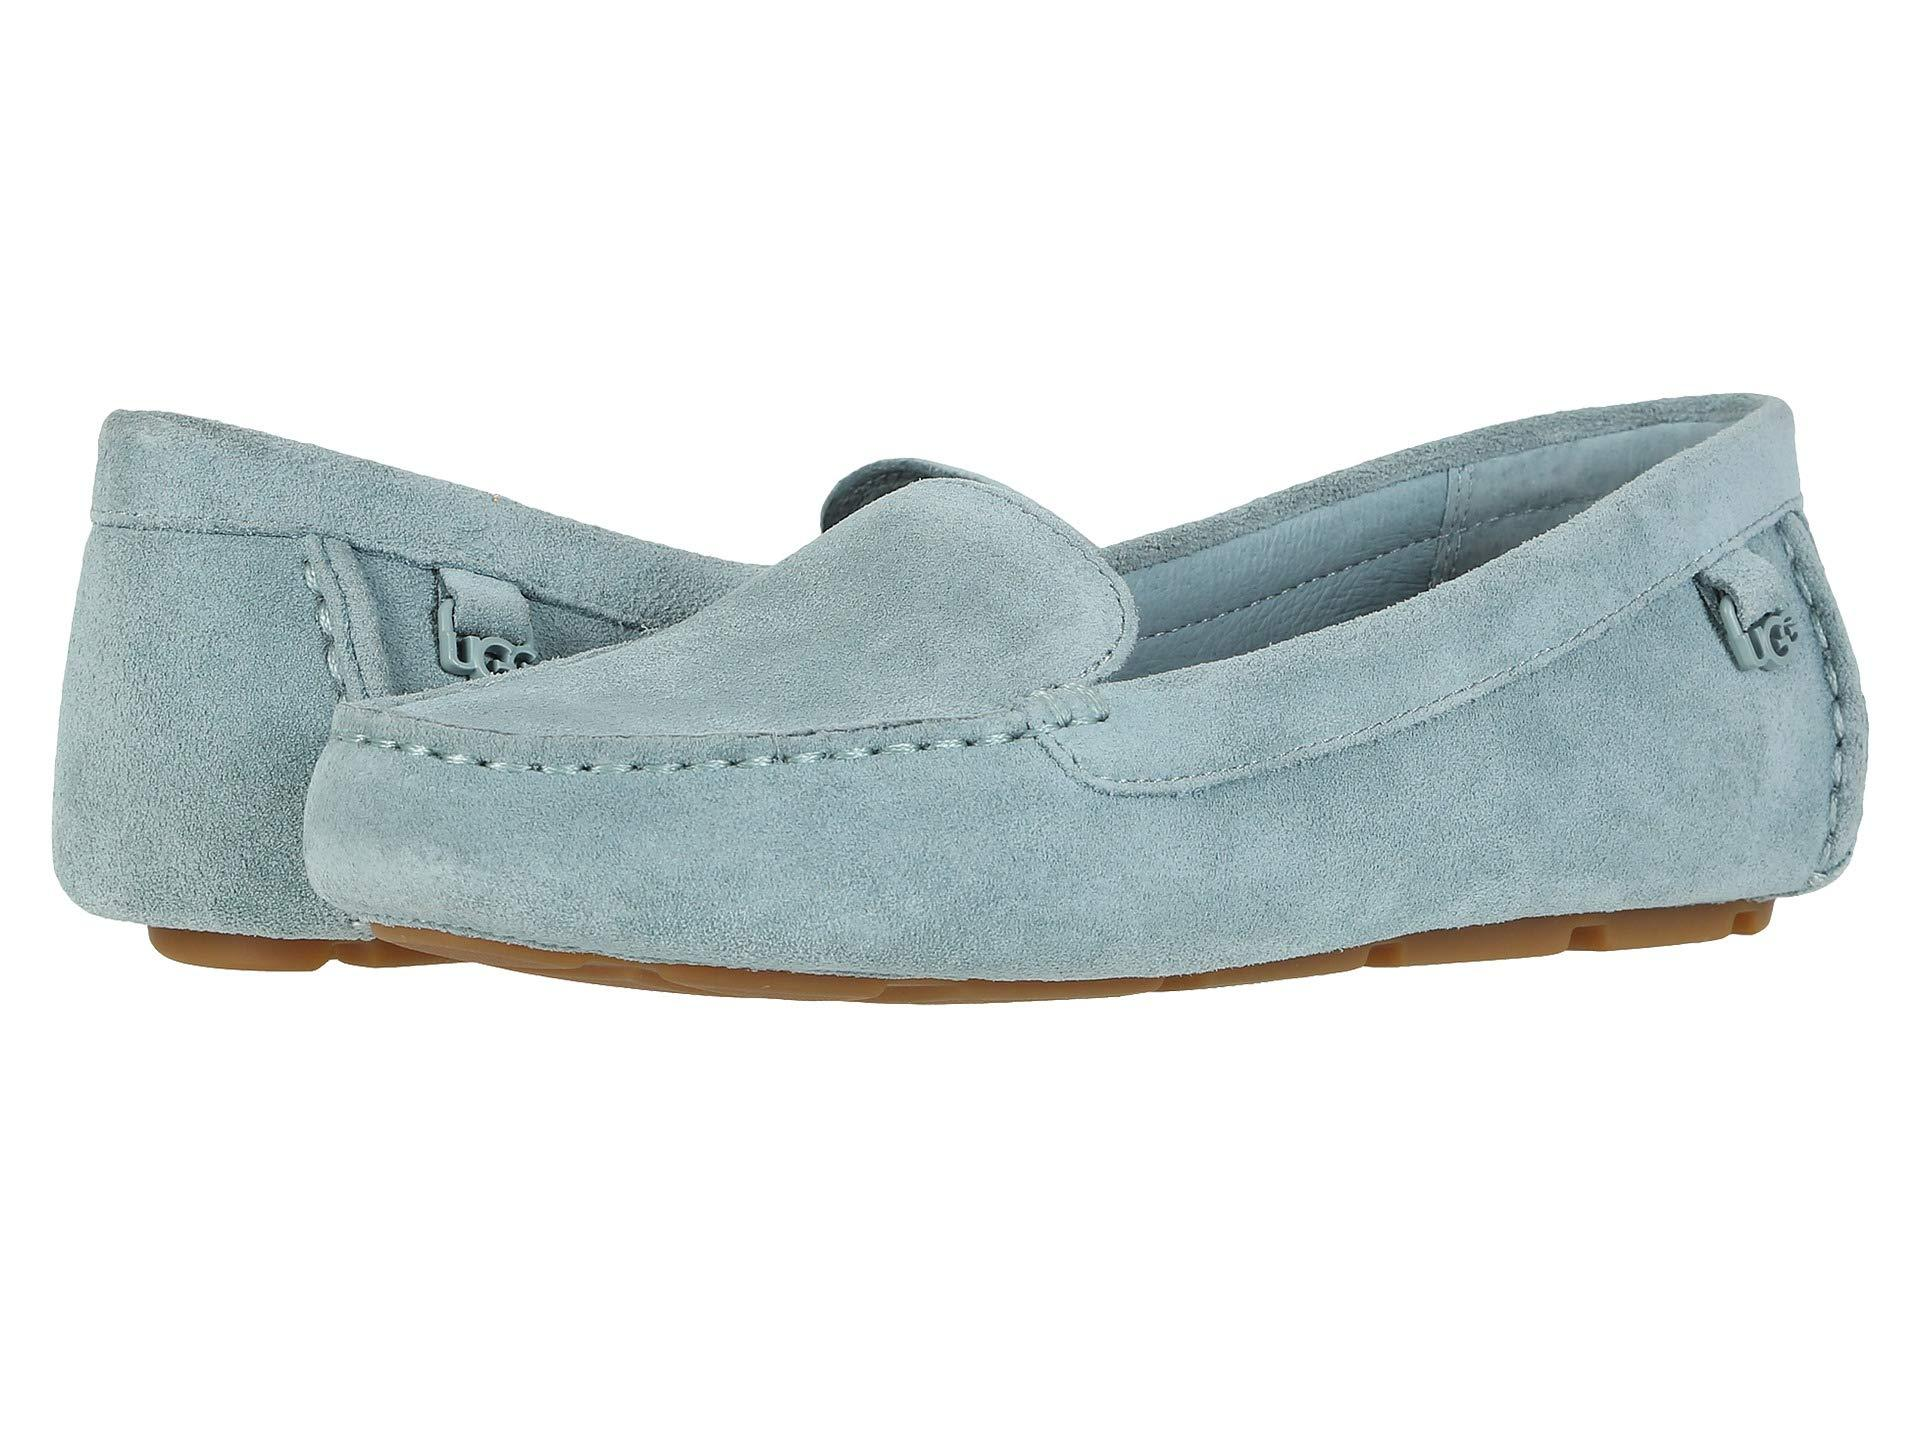 09a22e5959a Lyst - UGG Flores (sweet Sangria) Women s Sandals in Blue